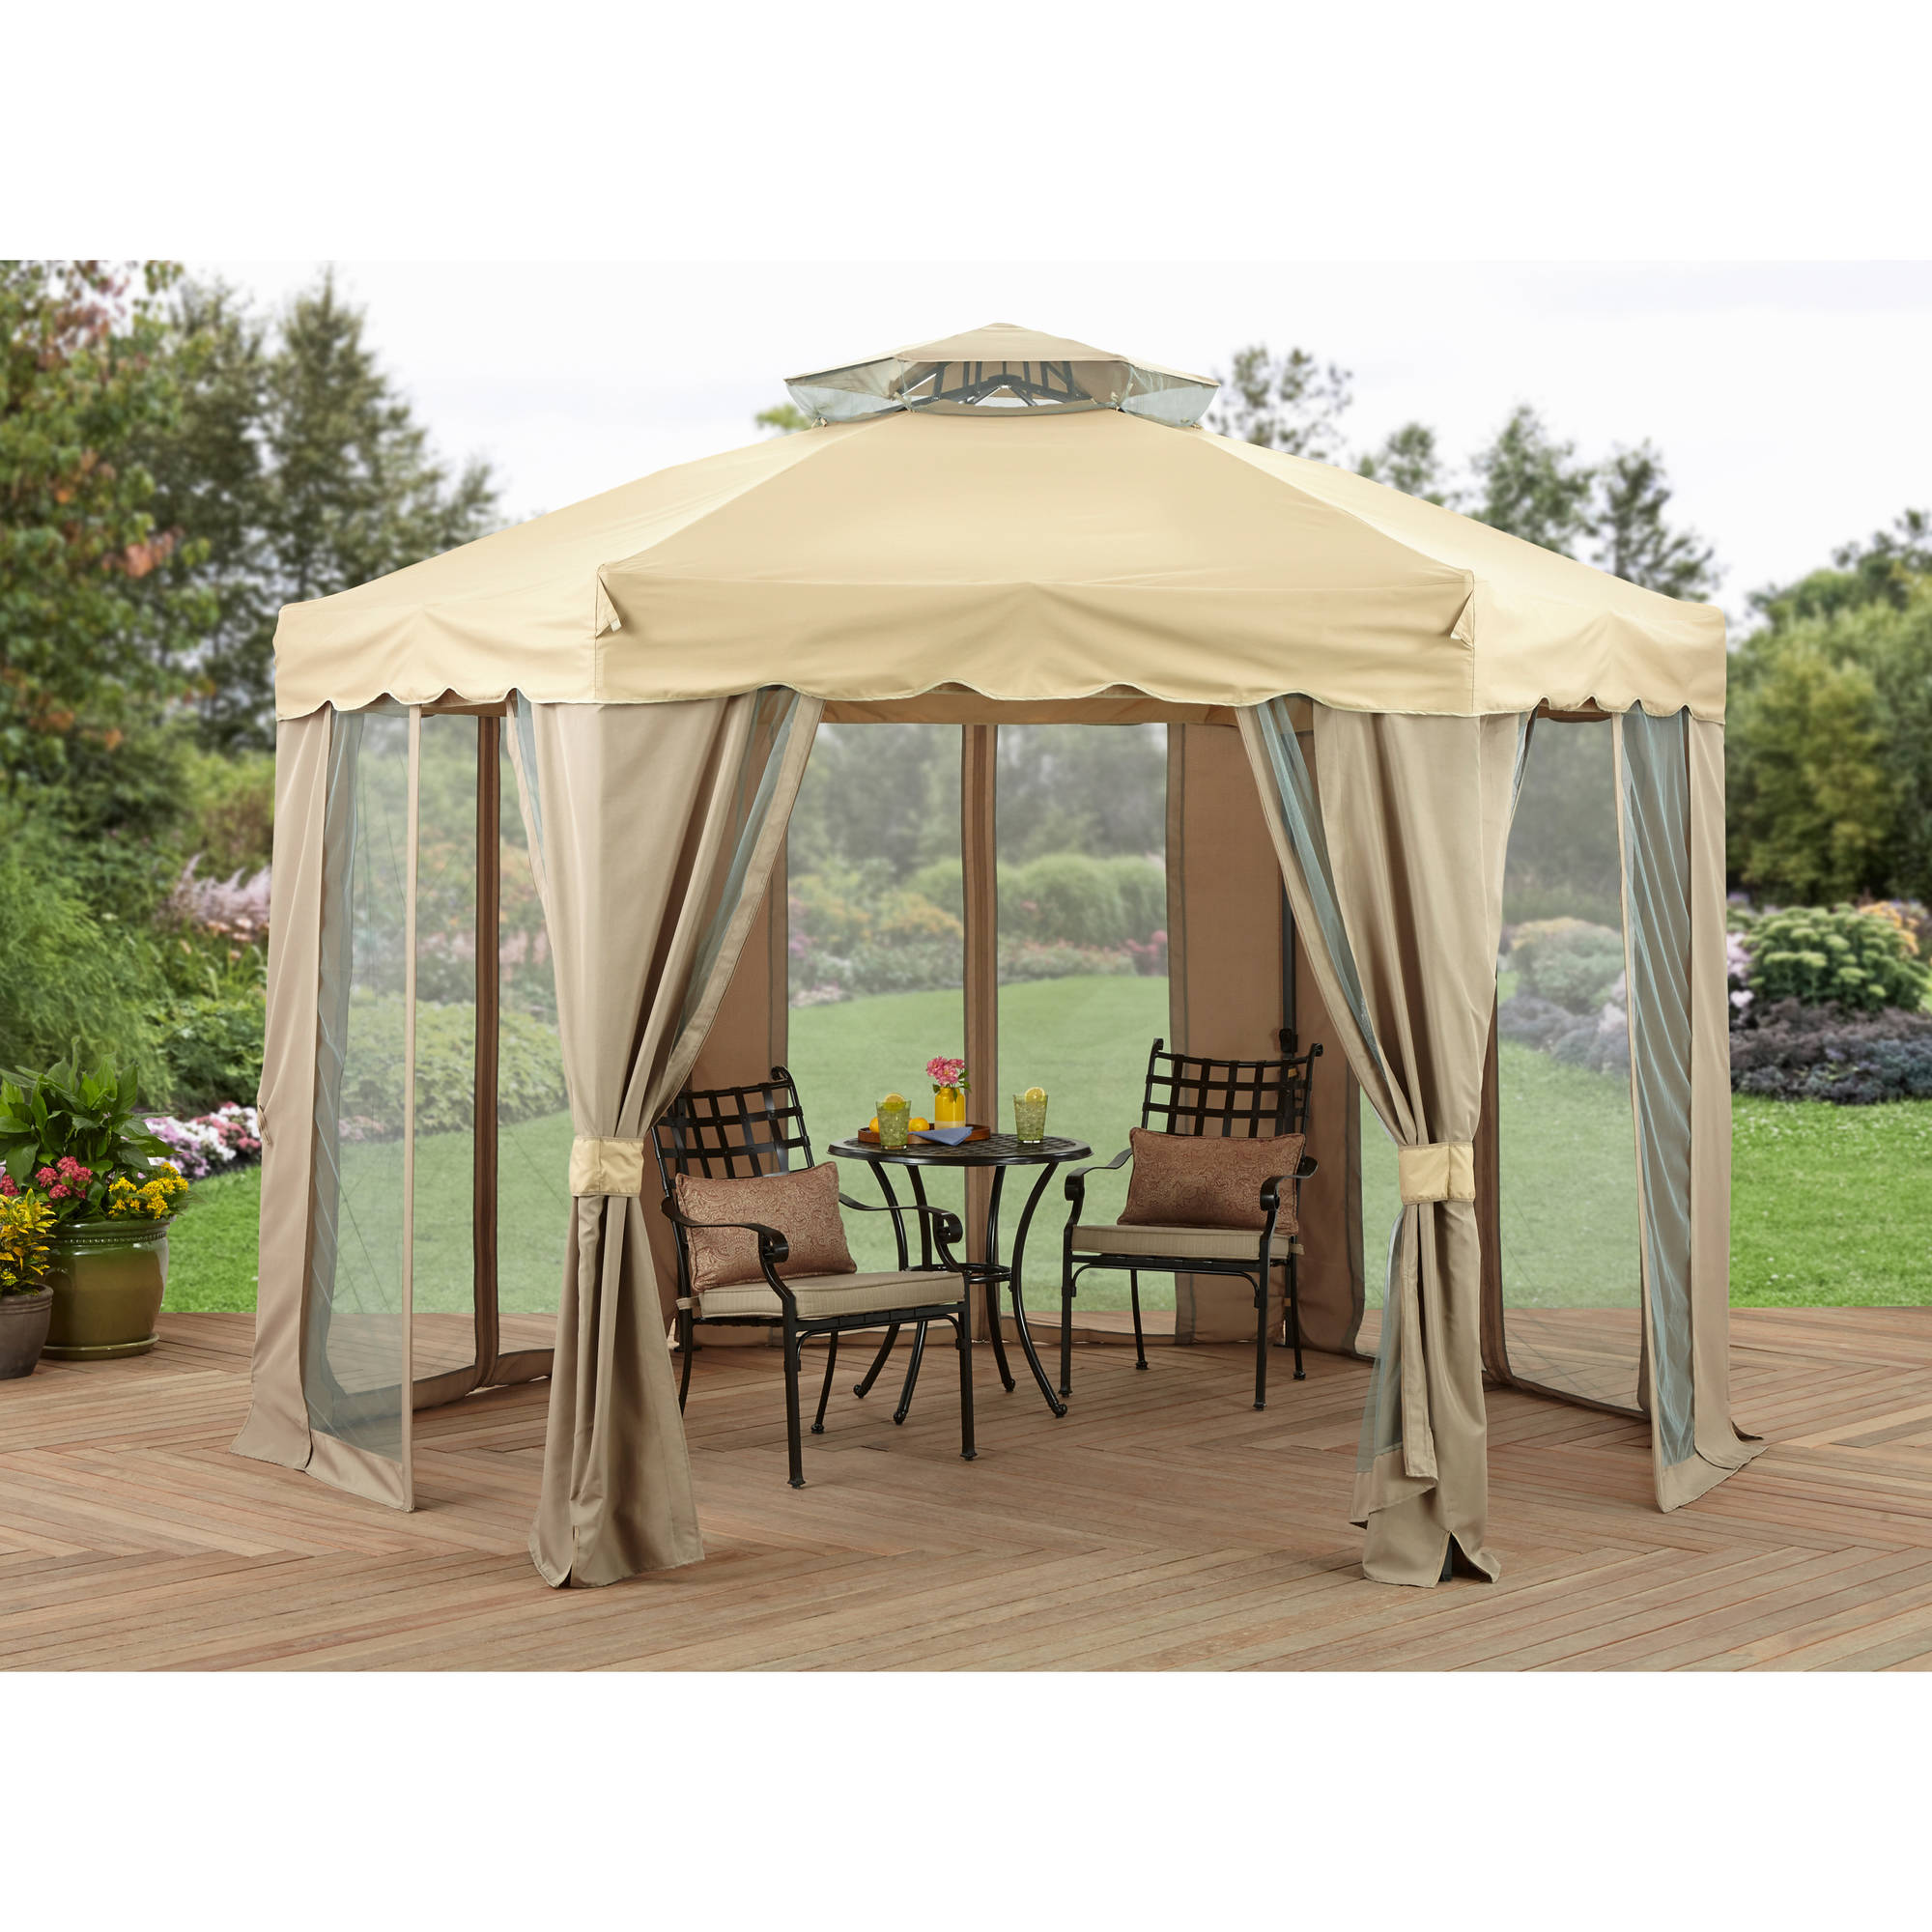 Better Homes and Gardens Gilded Grove Gazebo ...  sc 1 st  Walmart & Better Homes and Gardens Gilded Grove Gazebo 12u0027 x 12u0027 - Walmart.com